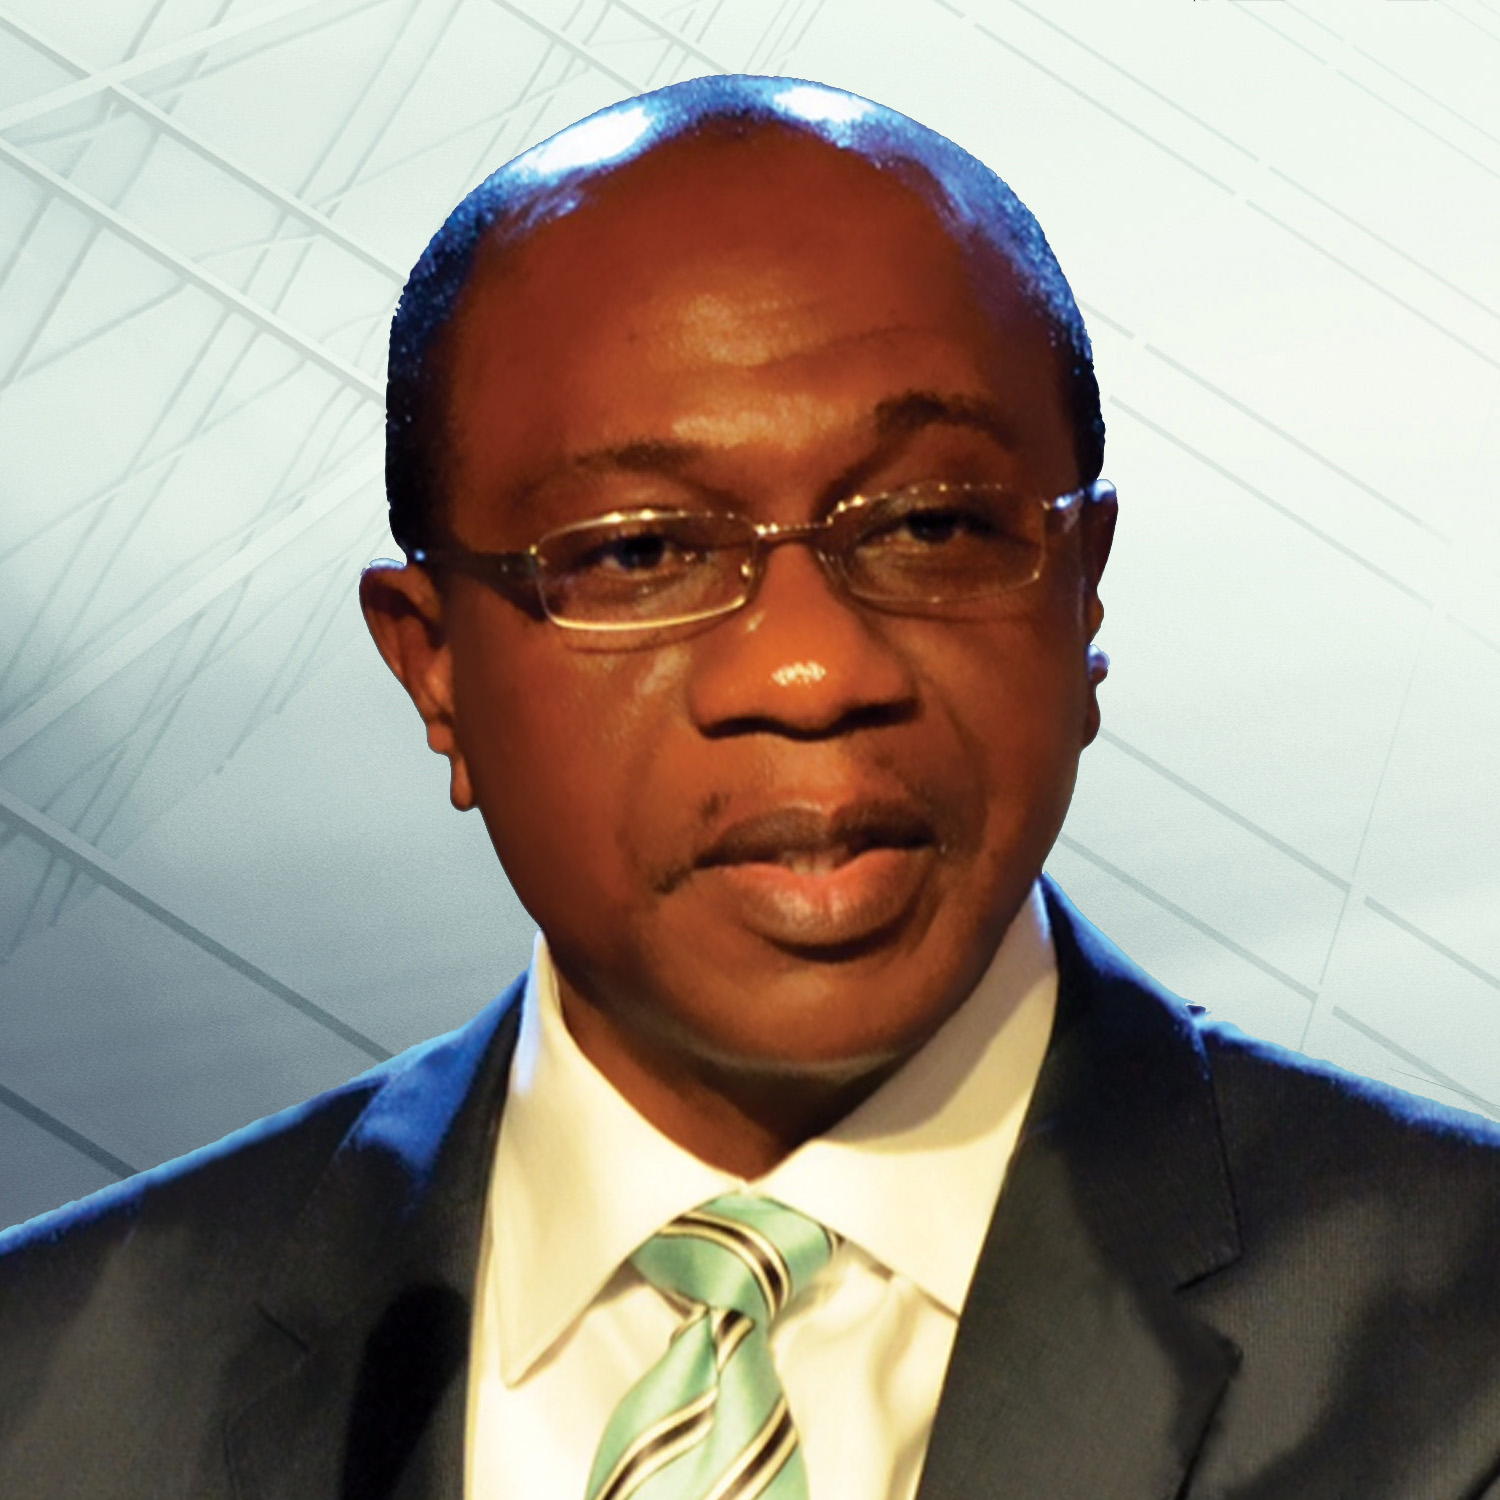 1.	Governor, Central Bank of Nigeria (CBN), Mr. Godwin Emefiele: Denies a Freedom of Information (FoI) request made by The Dream Daily Newspapers following claims that CBN officials are in cahoots with criminally-minded banks-owner to take billions of naira in unsecure loans, which led to the failed bank syndrome in the country